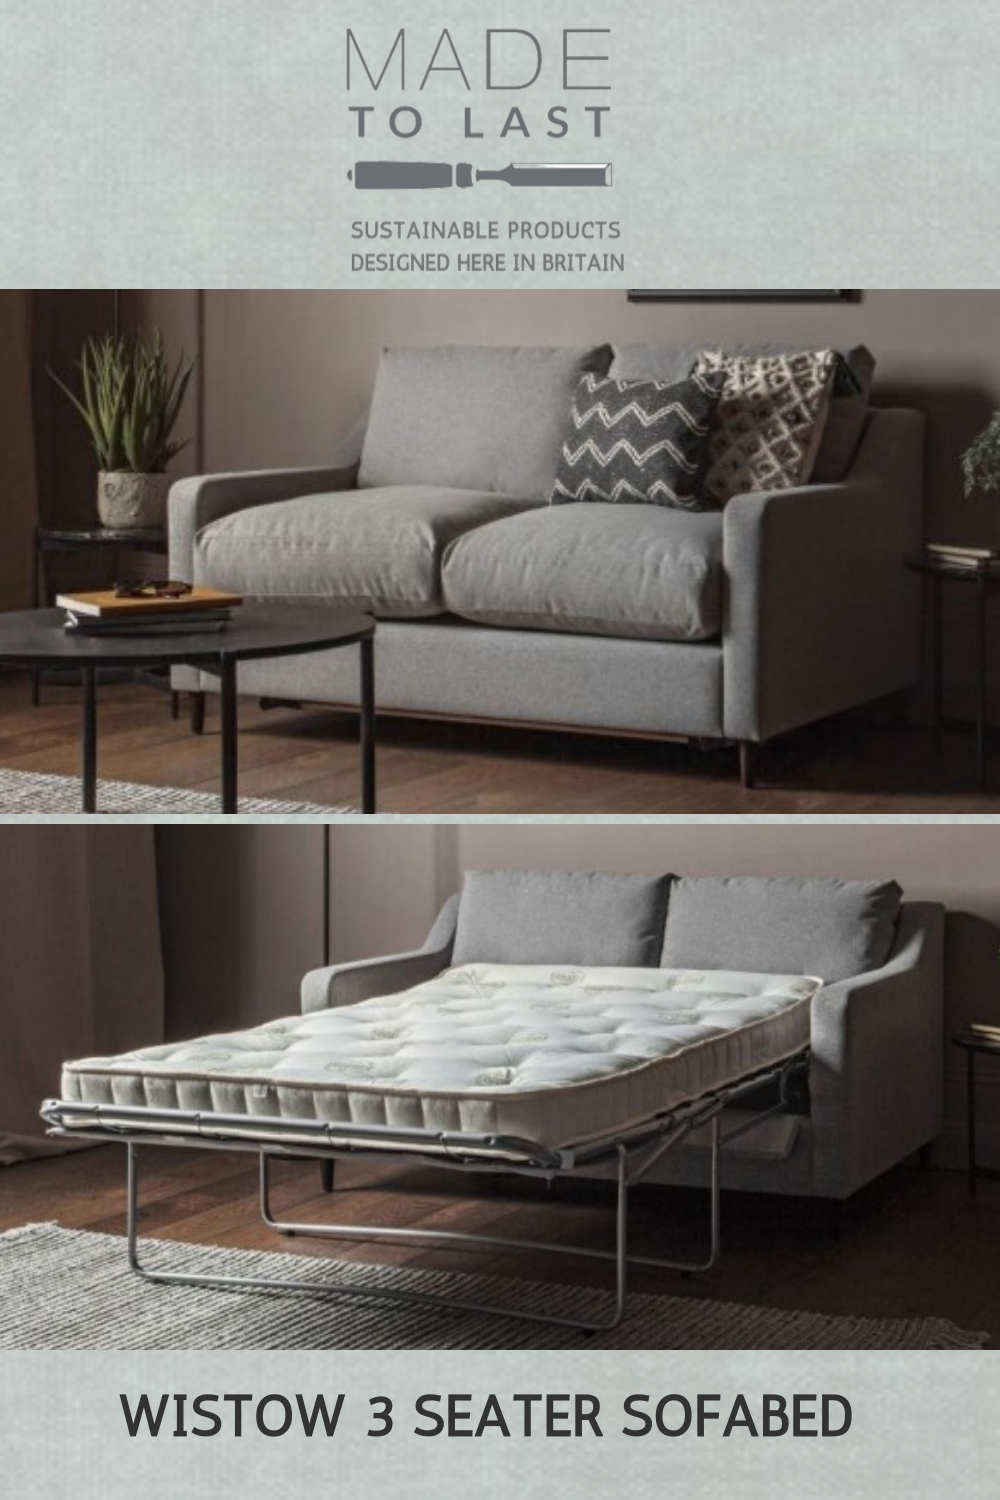 Wistow 3 Seater Sofabed in 2020 Sofa bed, Seater